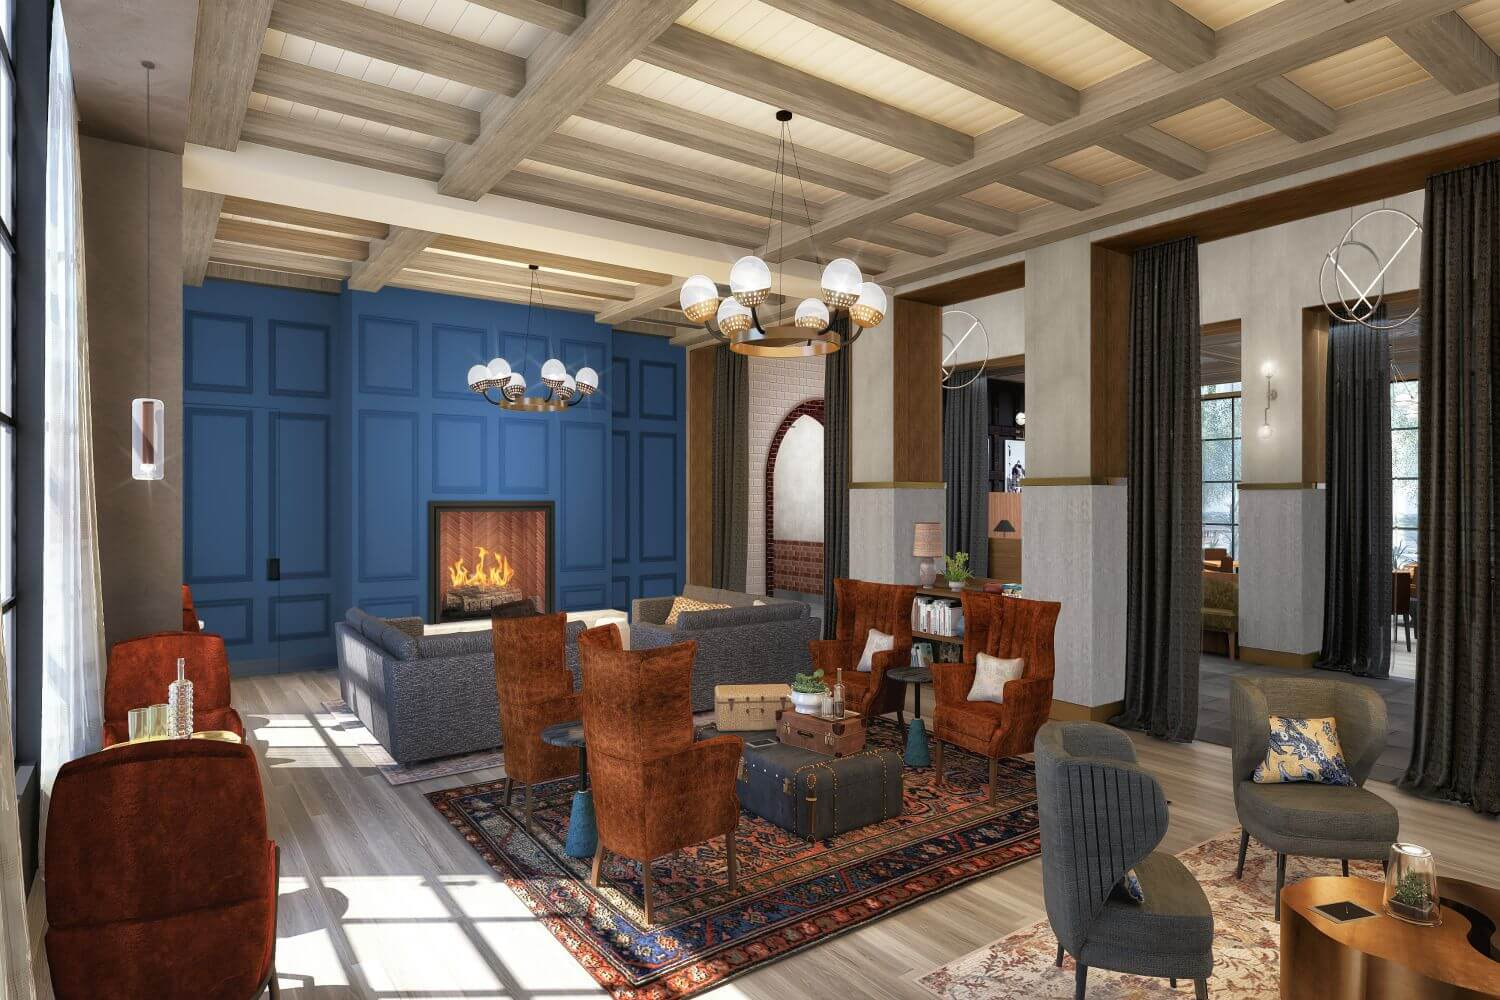 View of Hotel Vin living room in Grapevine with fireplace and communal seating